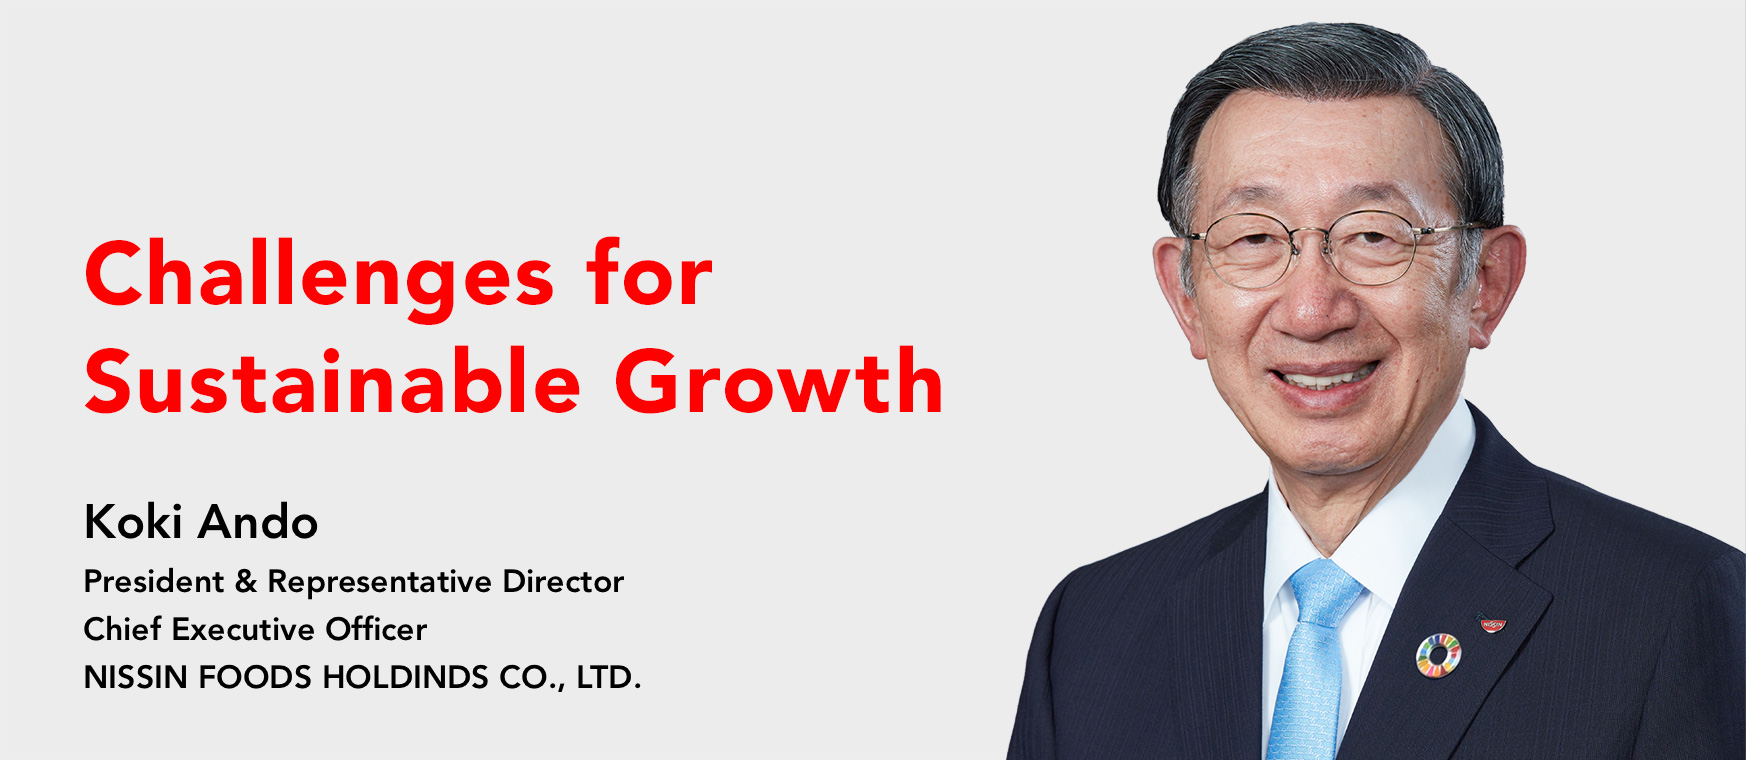 Challenges for Sustainable Growth